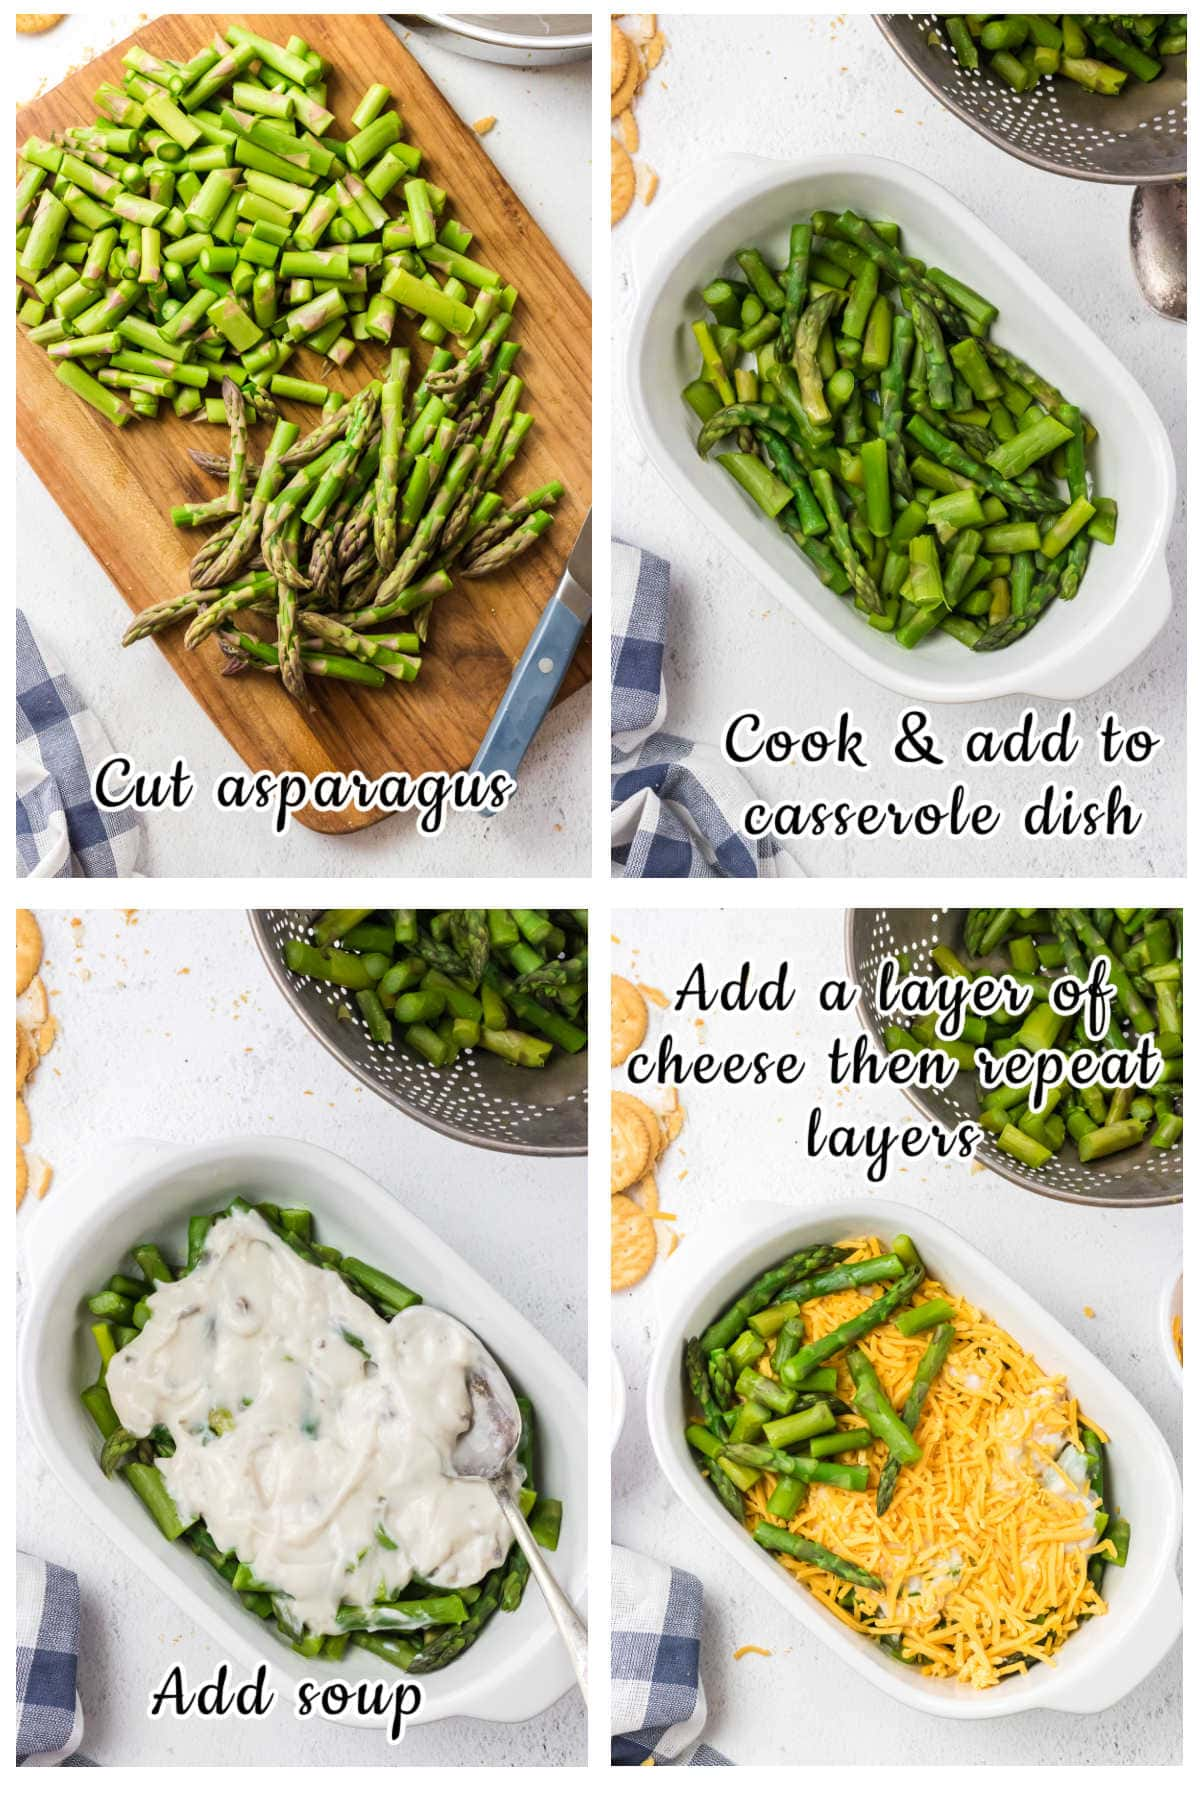 Step by step images showing how to make asparagus casserole.